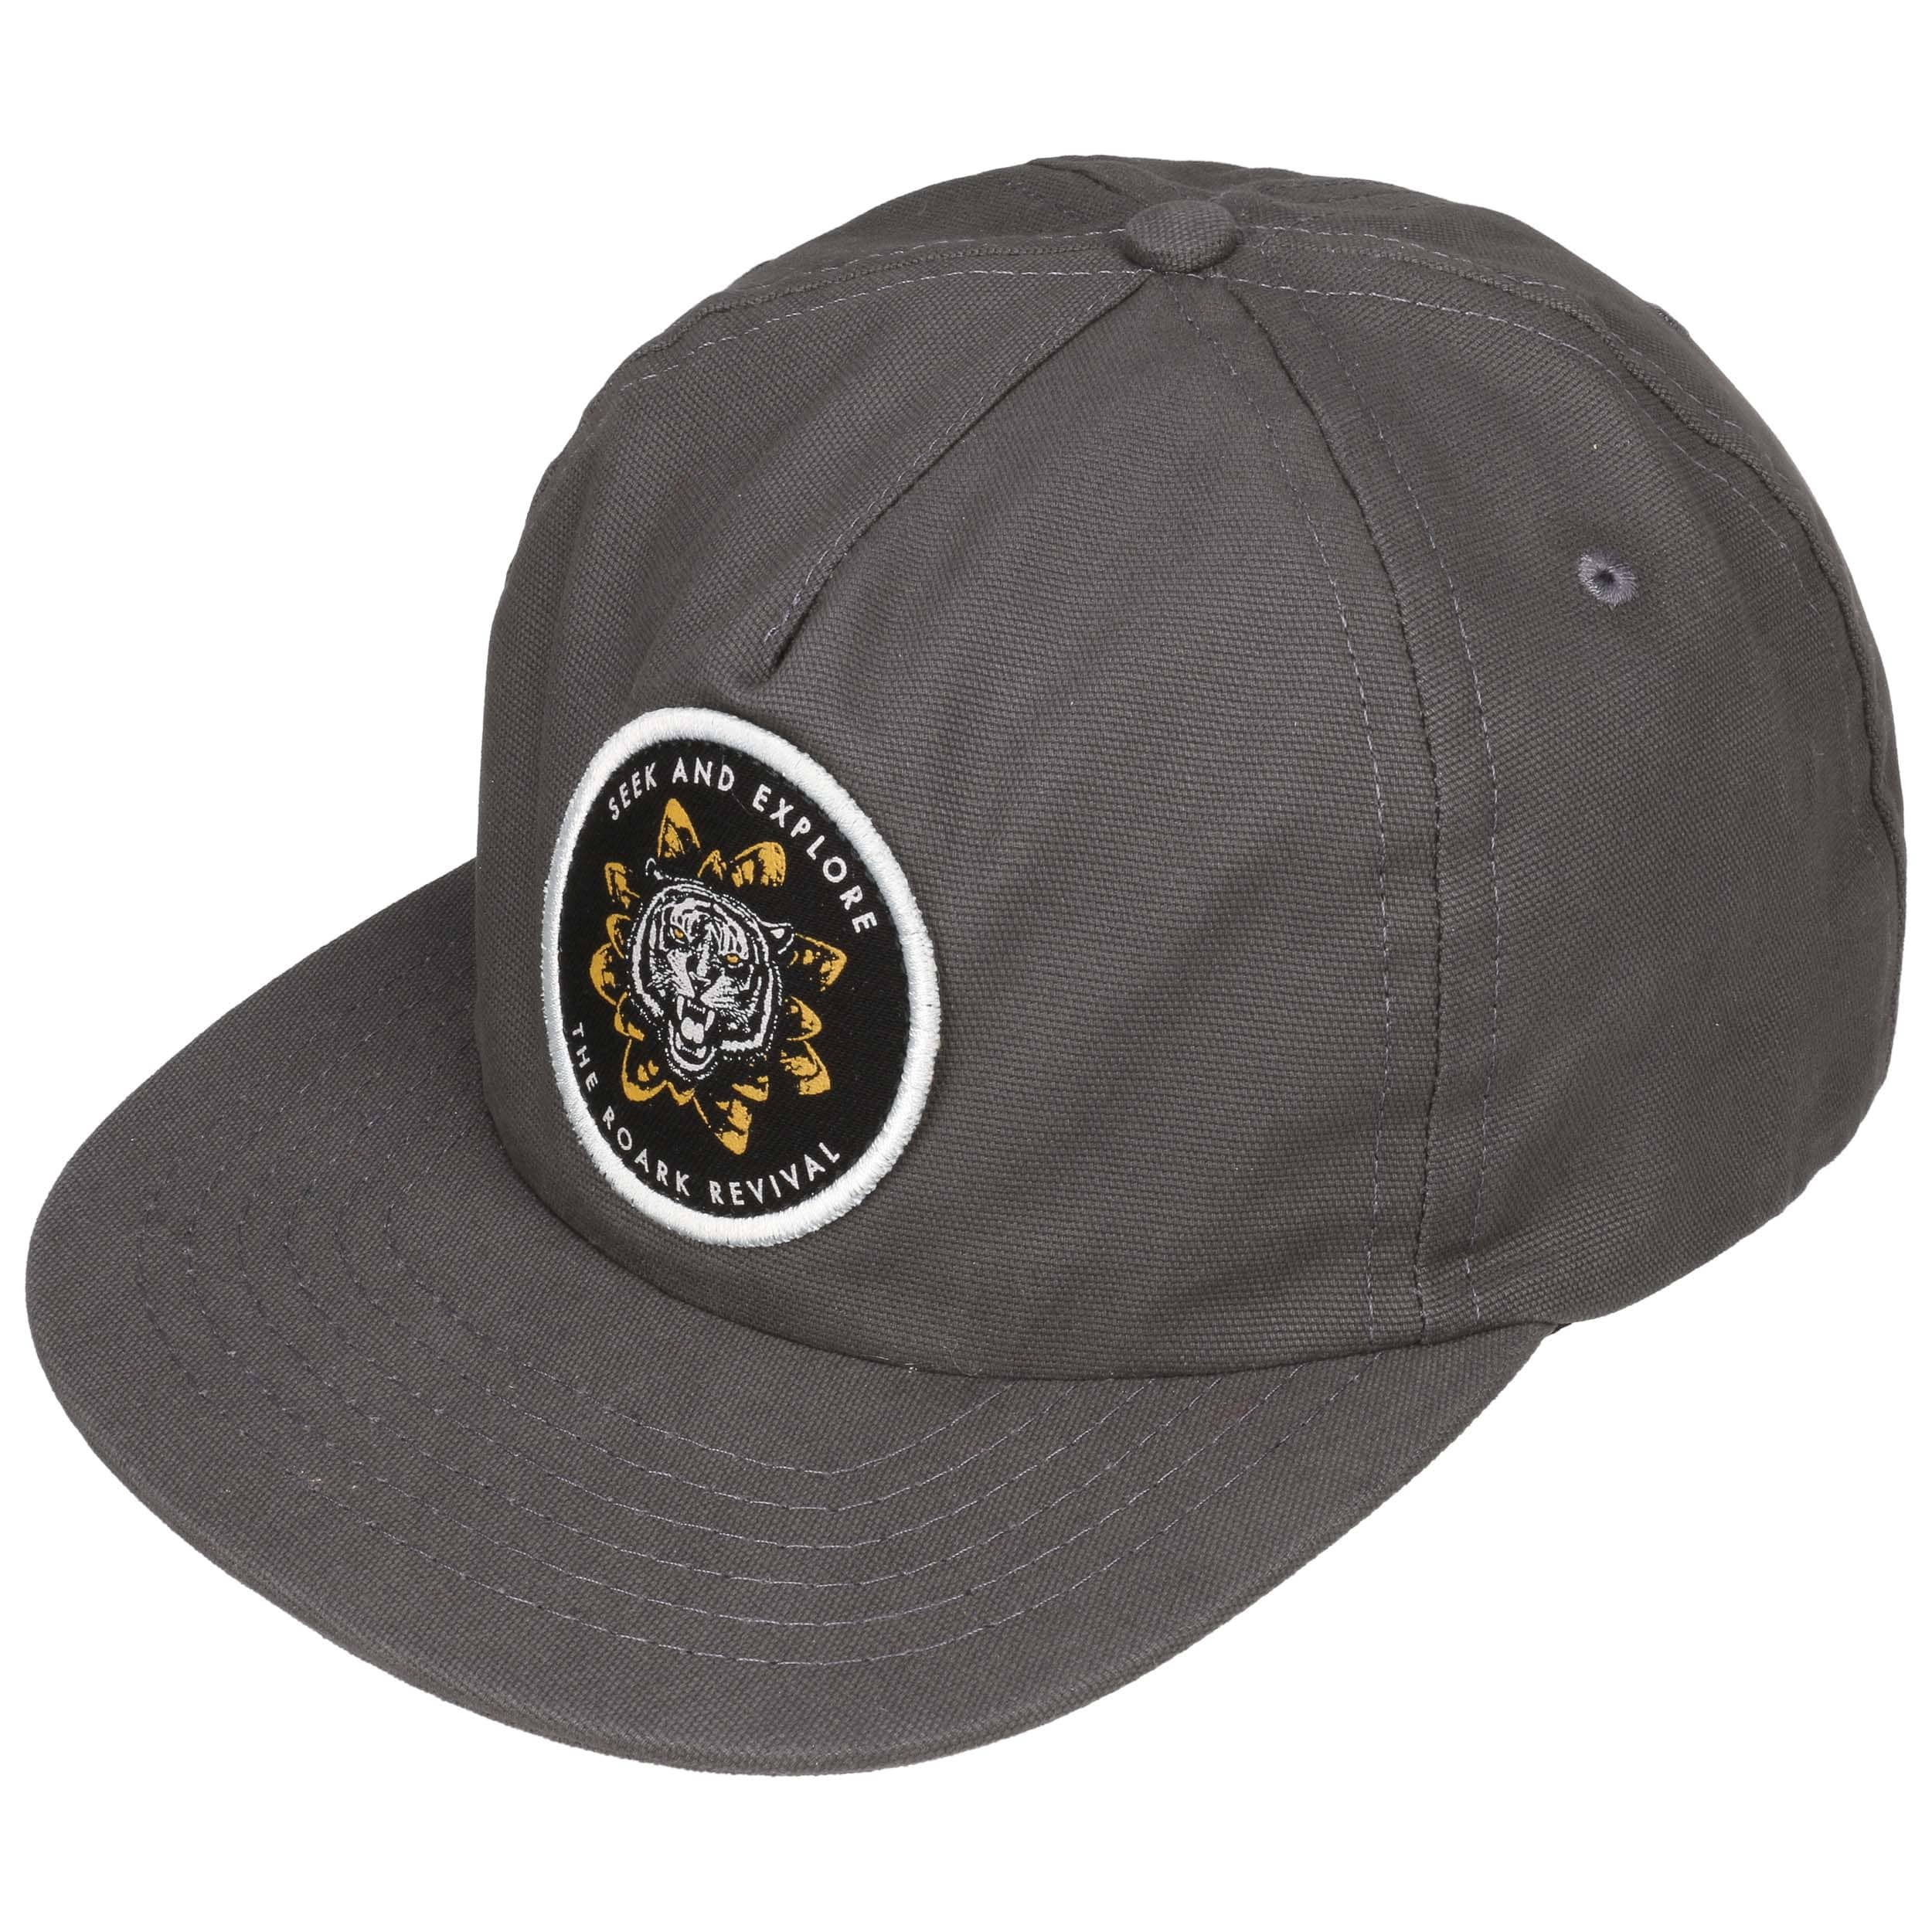 If you are looking for a cap for summer, you have a range of baseball caps, golf caps, hats and fedoras that you can have a look at online. You also have caps that come in packs of two, three, four and even caps in packs of 24, 50 and if you plan to buy men's caps in bulk for a team, class or a large group.